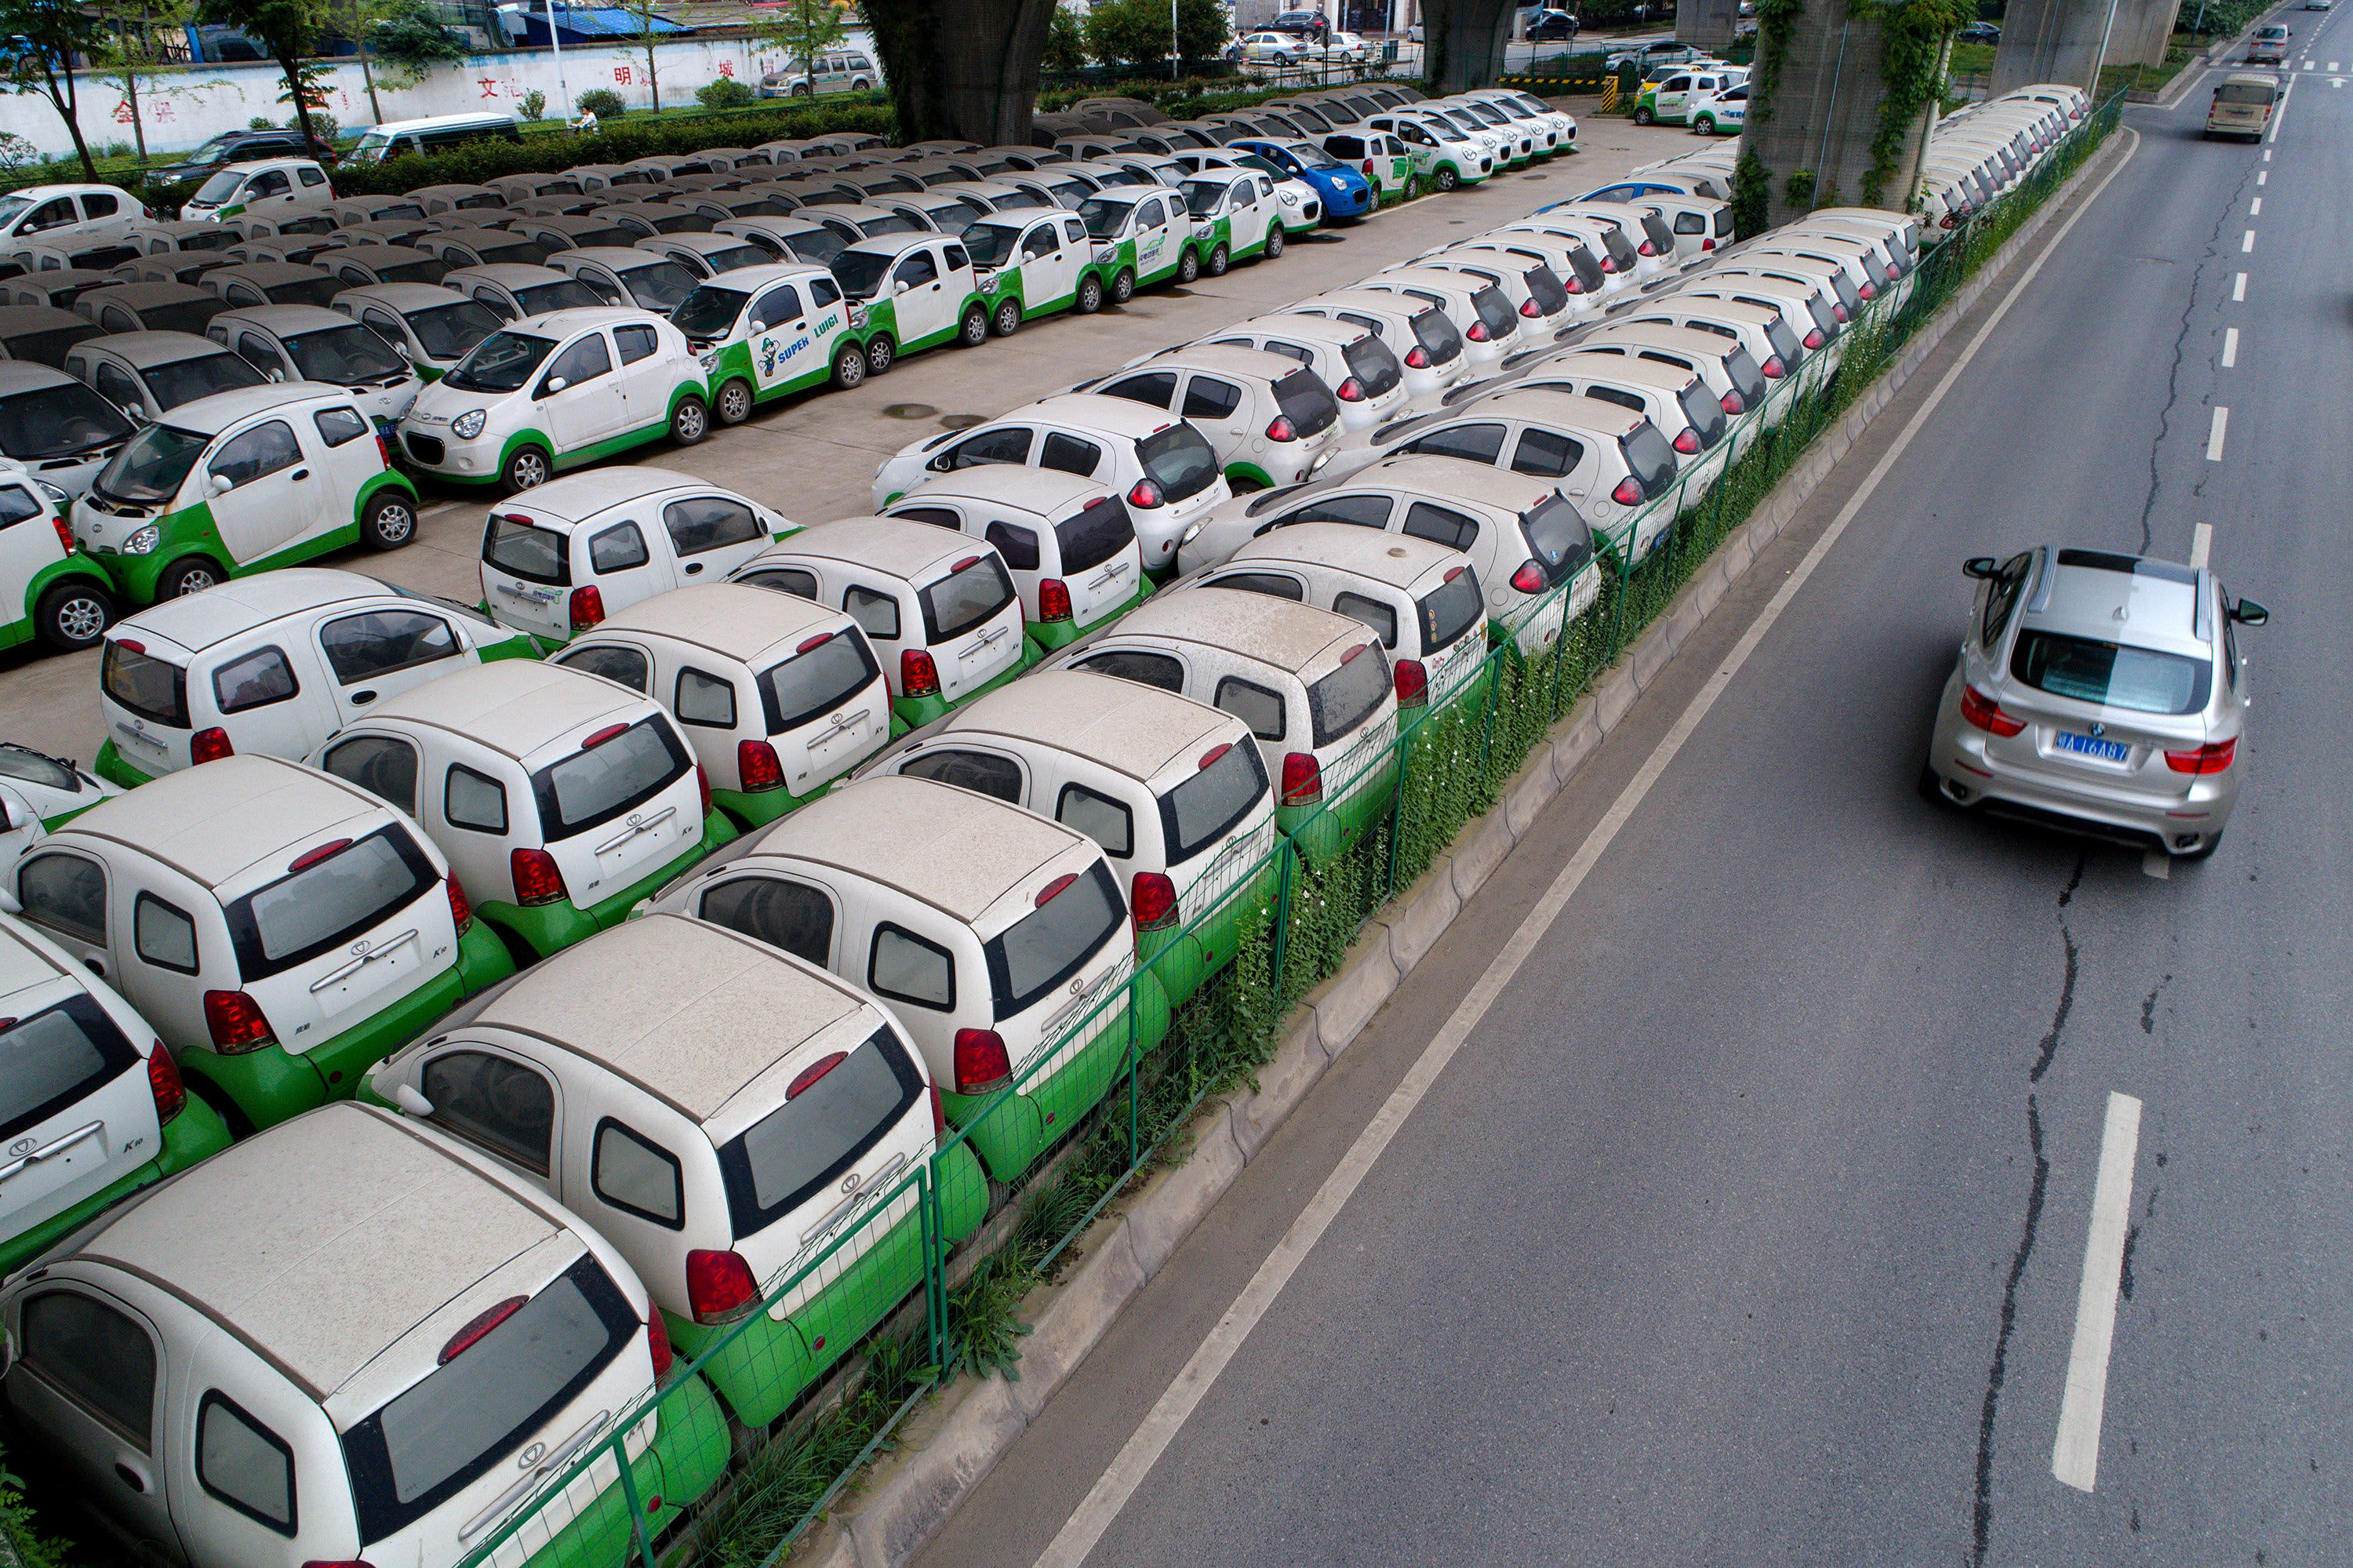 Electric vehicles will grow from 3 million to 125 million by